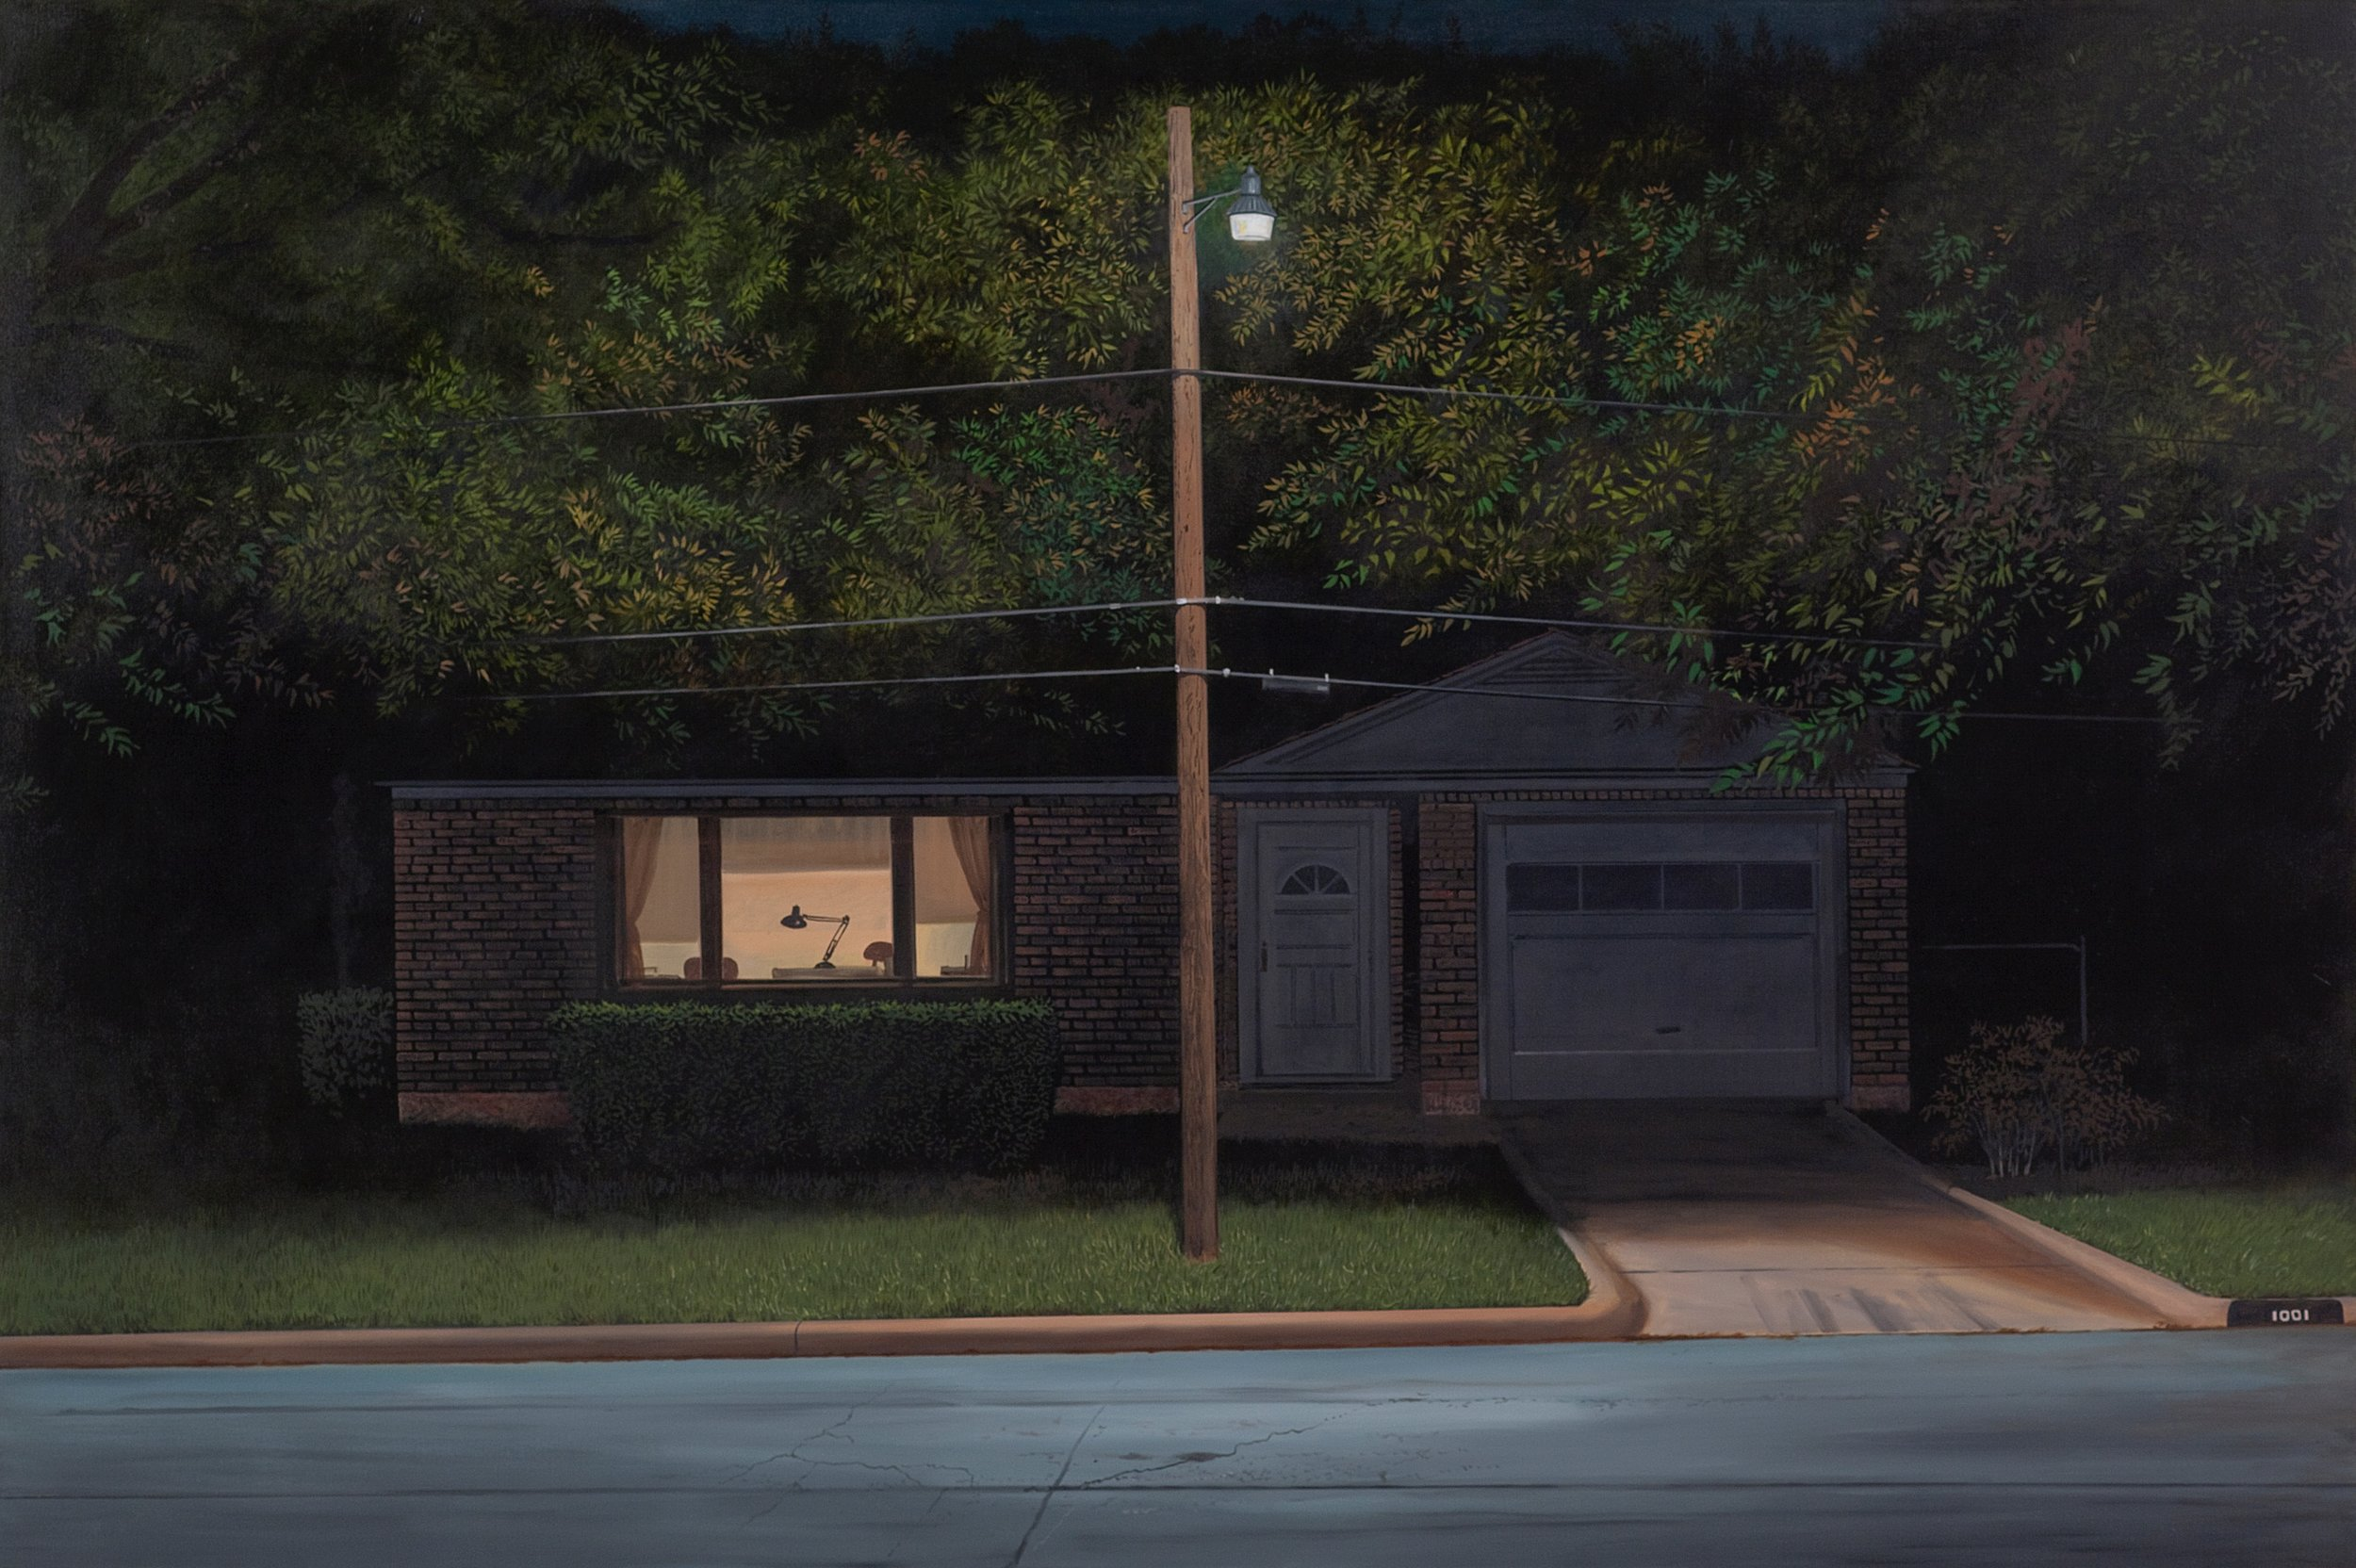 "Daniel Blagg,  Street Light,  2014, oil on canvas, 50 x 73"". Private Collection."